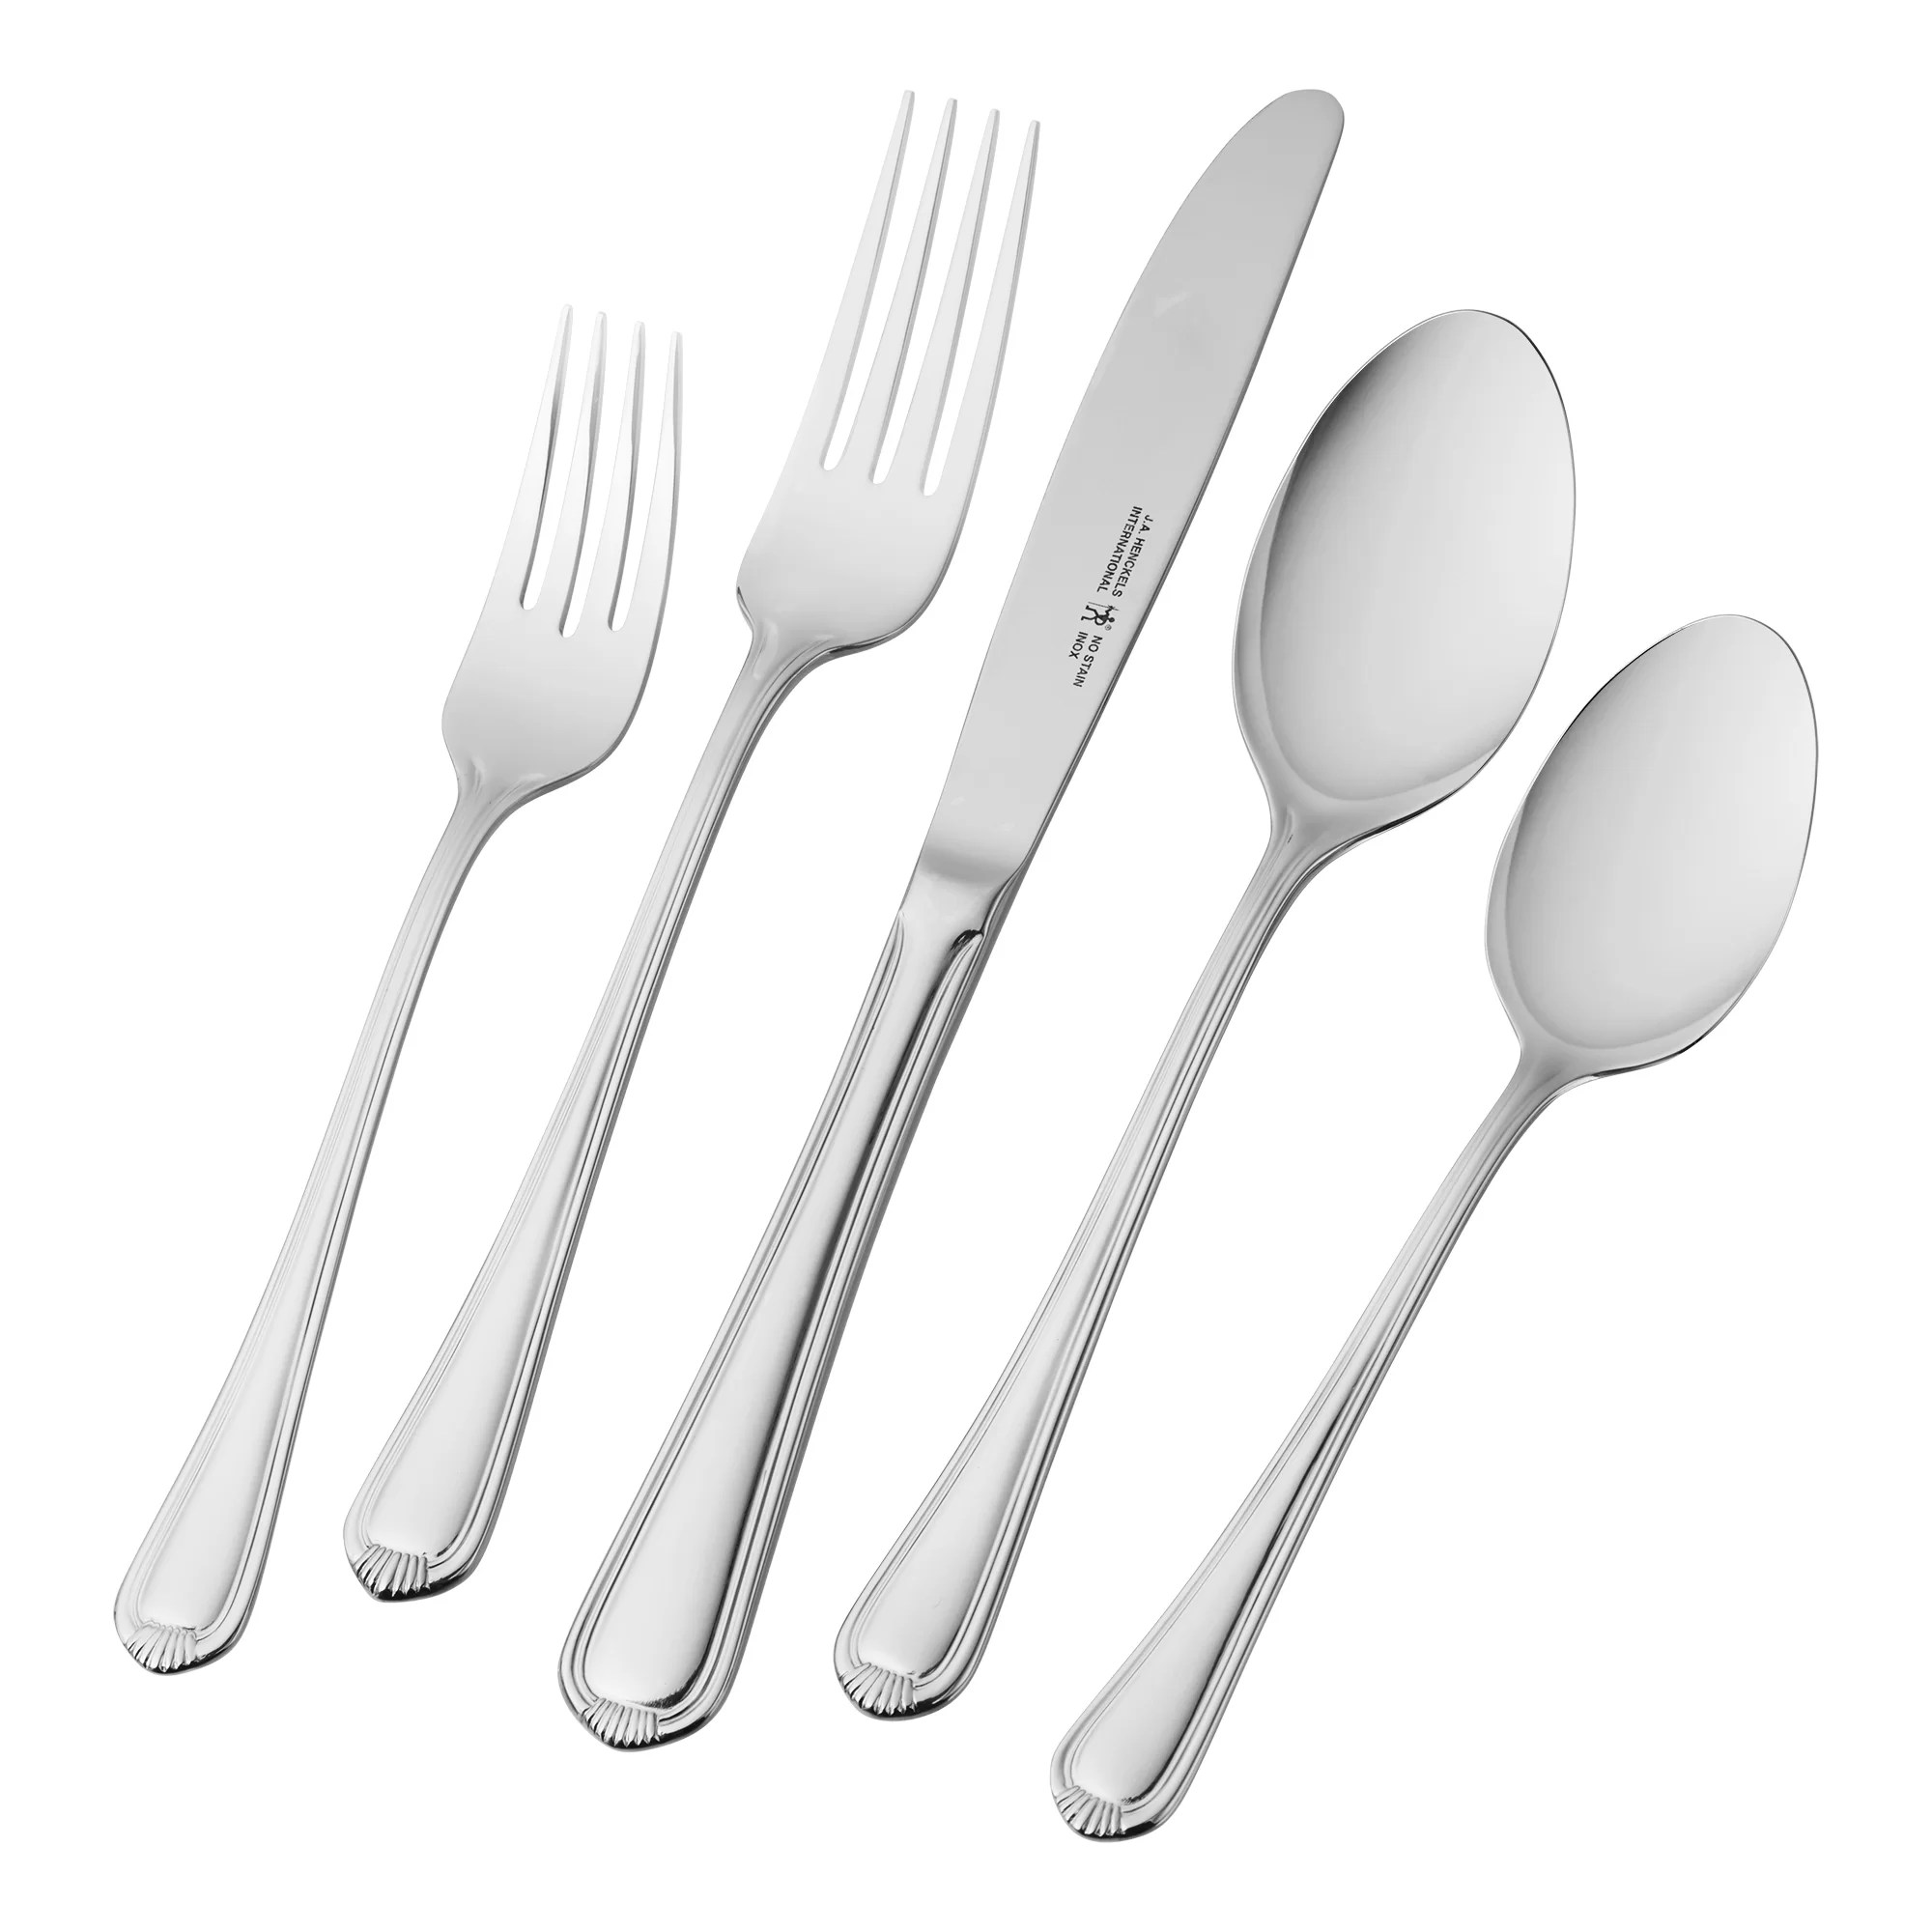 Discount Stainless Flatware Alcea 65 Piece 18 10 Stainless Steel Flatware Set Service For 12